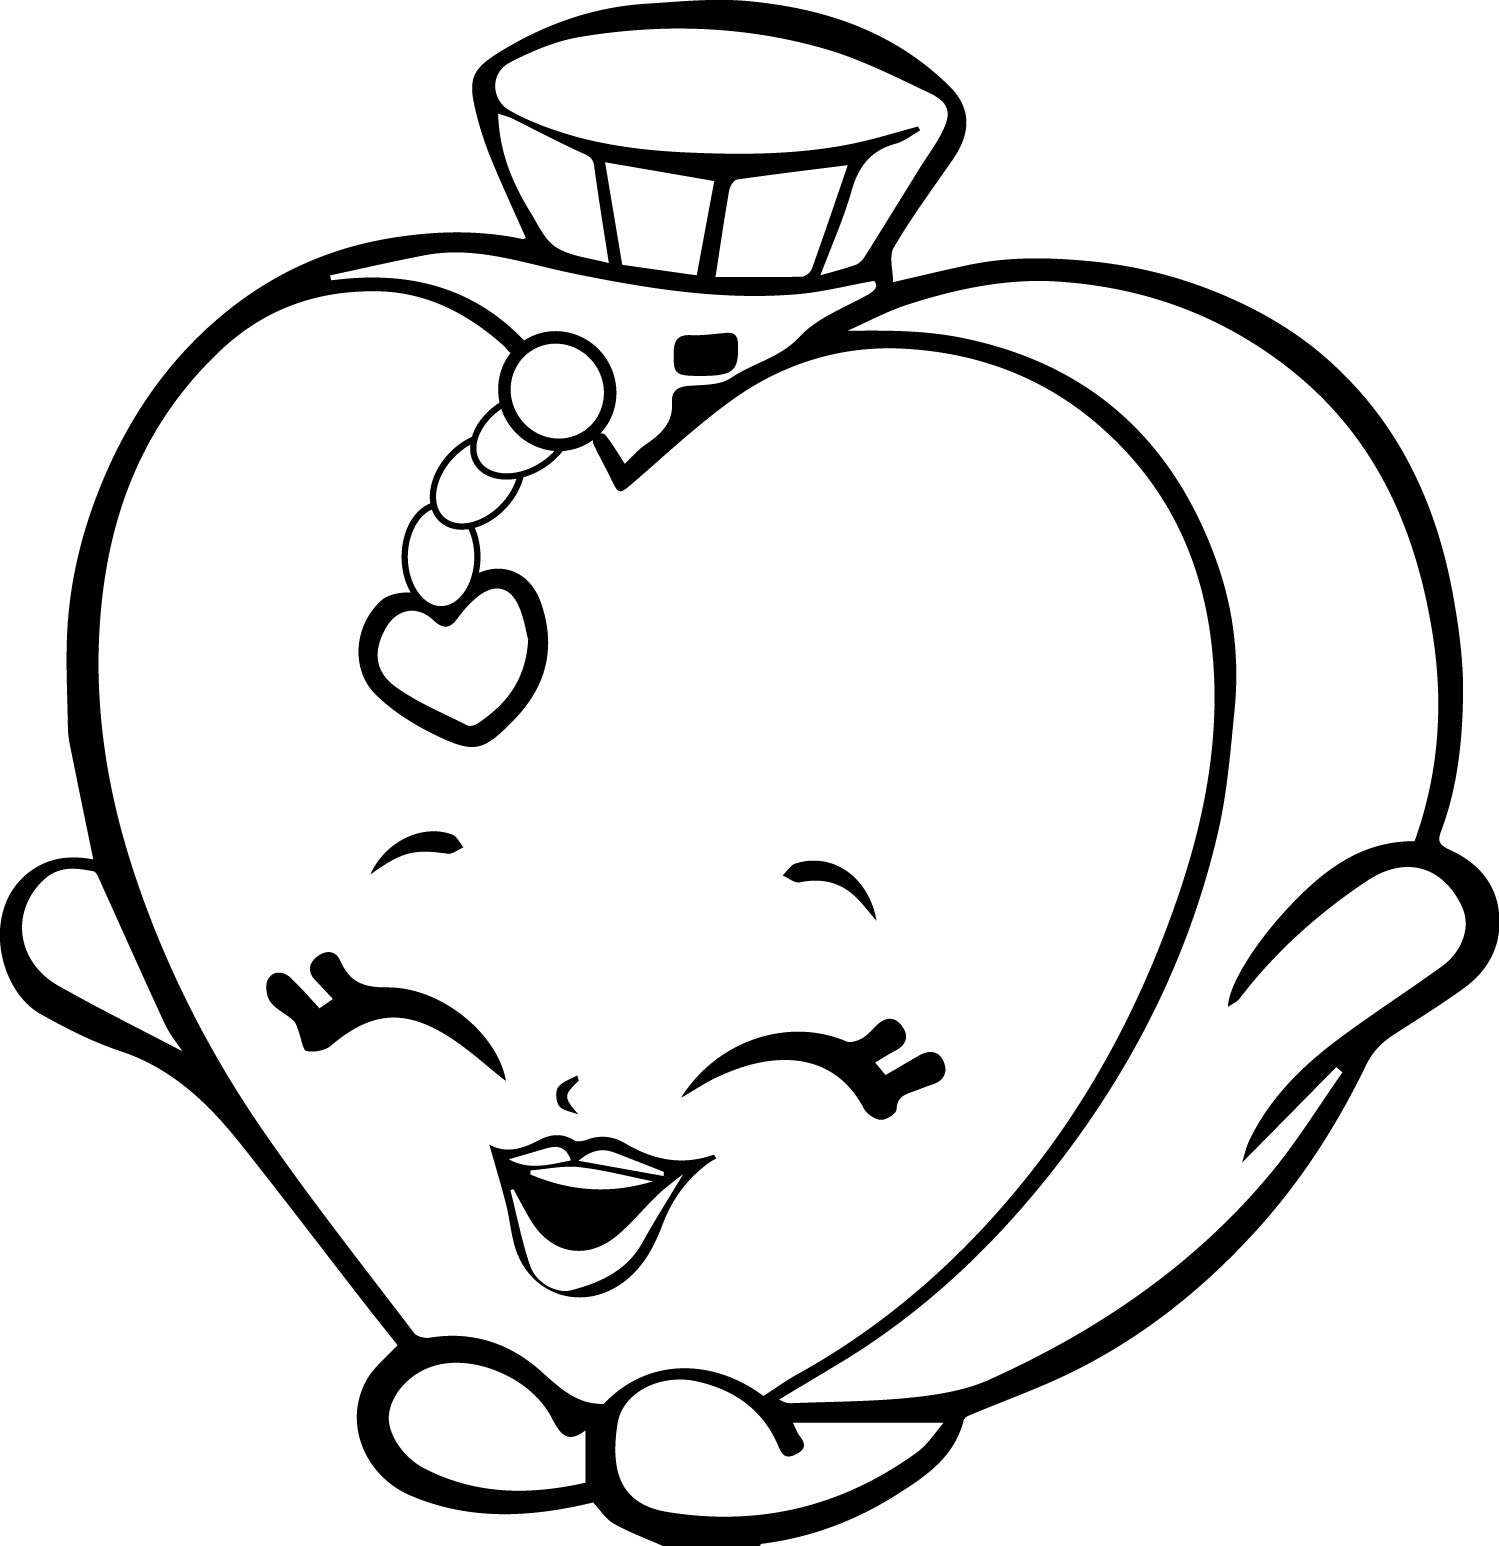 1499x1546 Charming Decoration Shopkins Coloring Pages Cheeky Chocolate Page